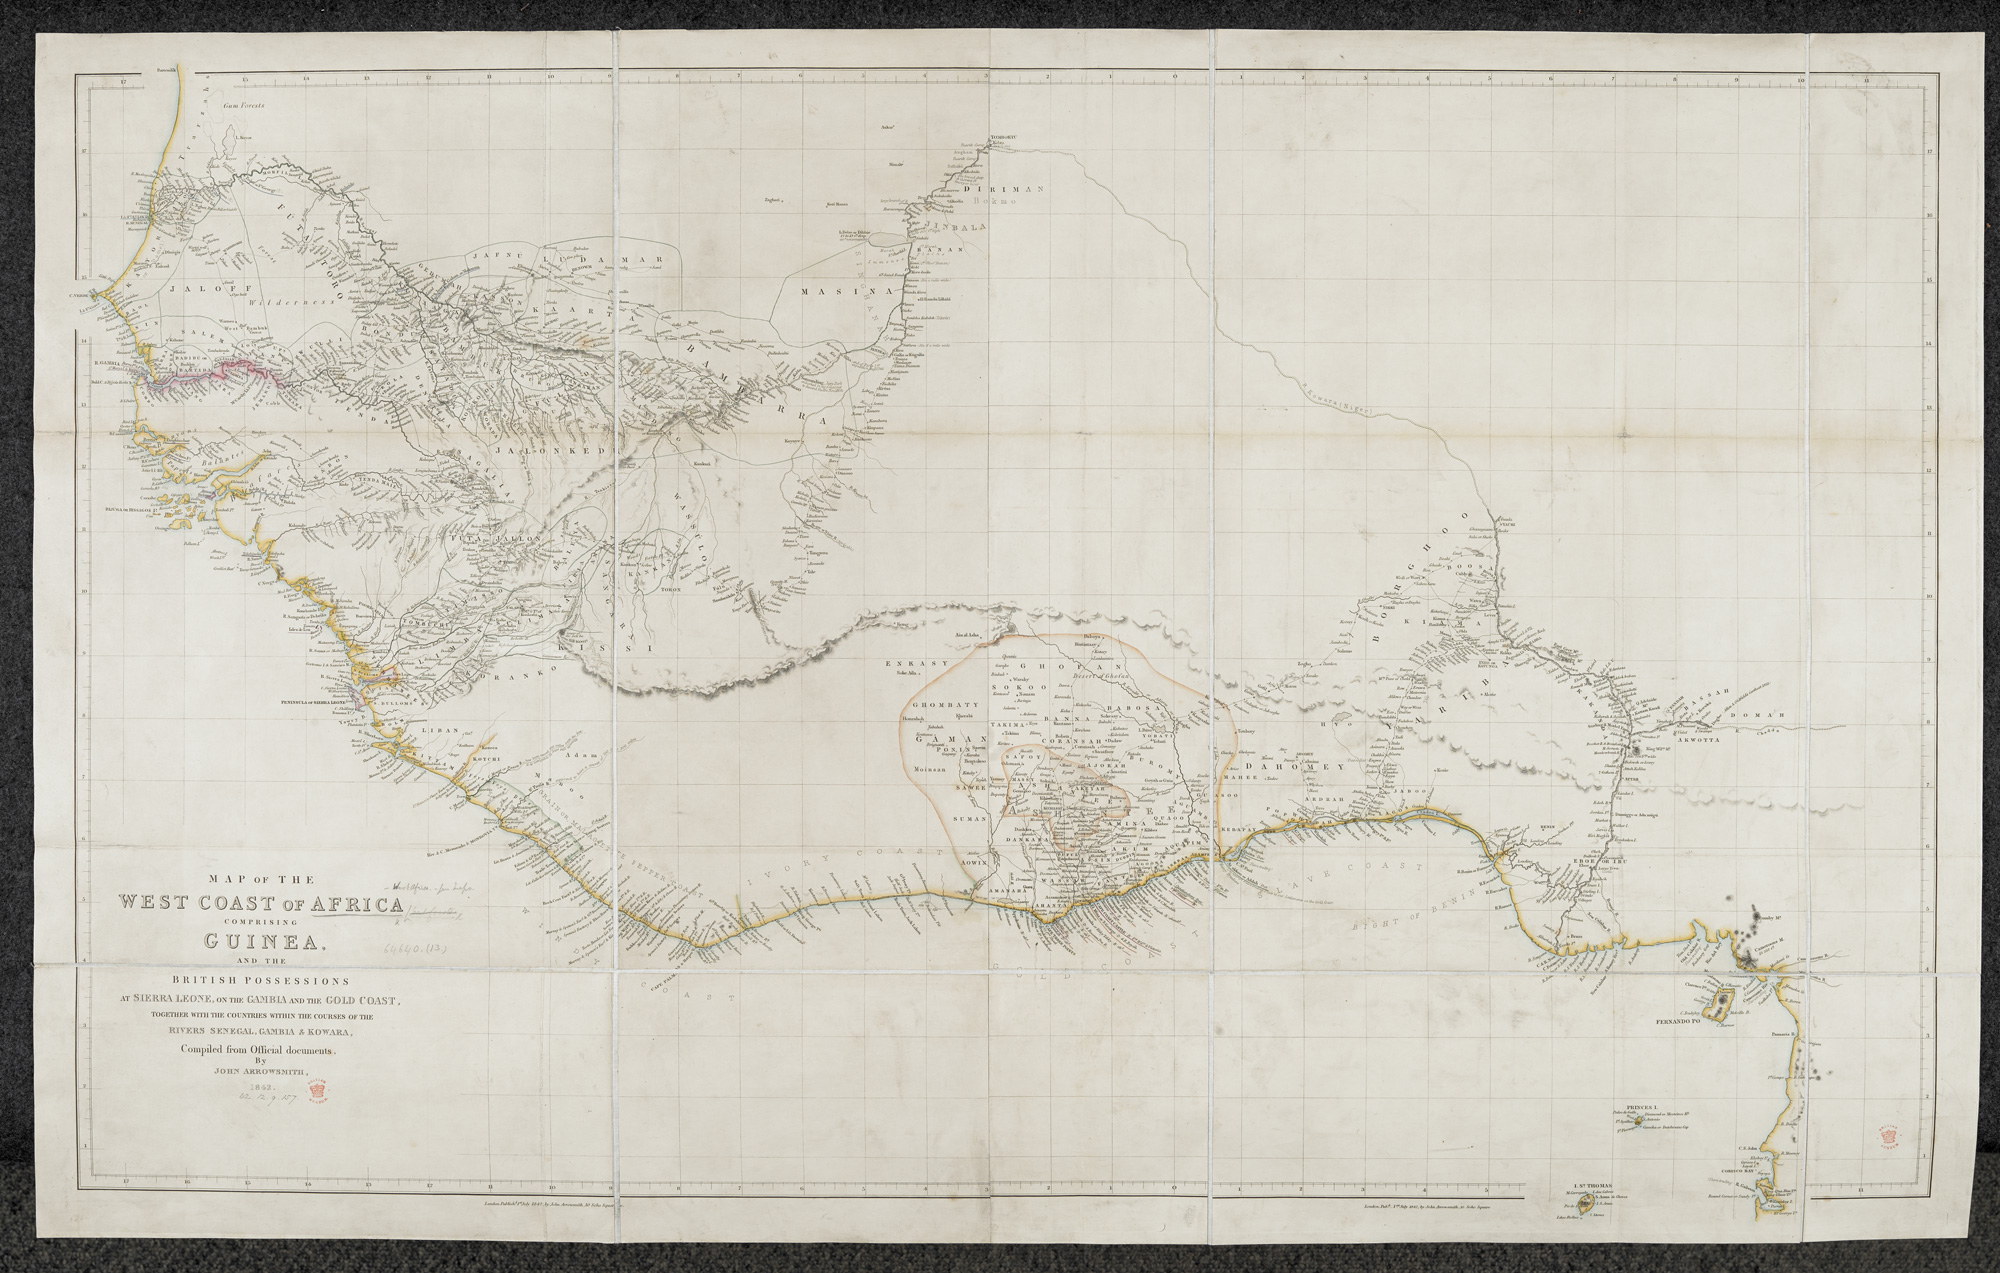 Map Of The West Coast Of Africa 1842 The British Library